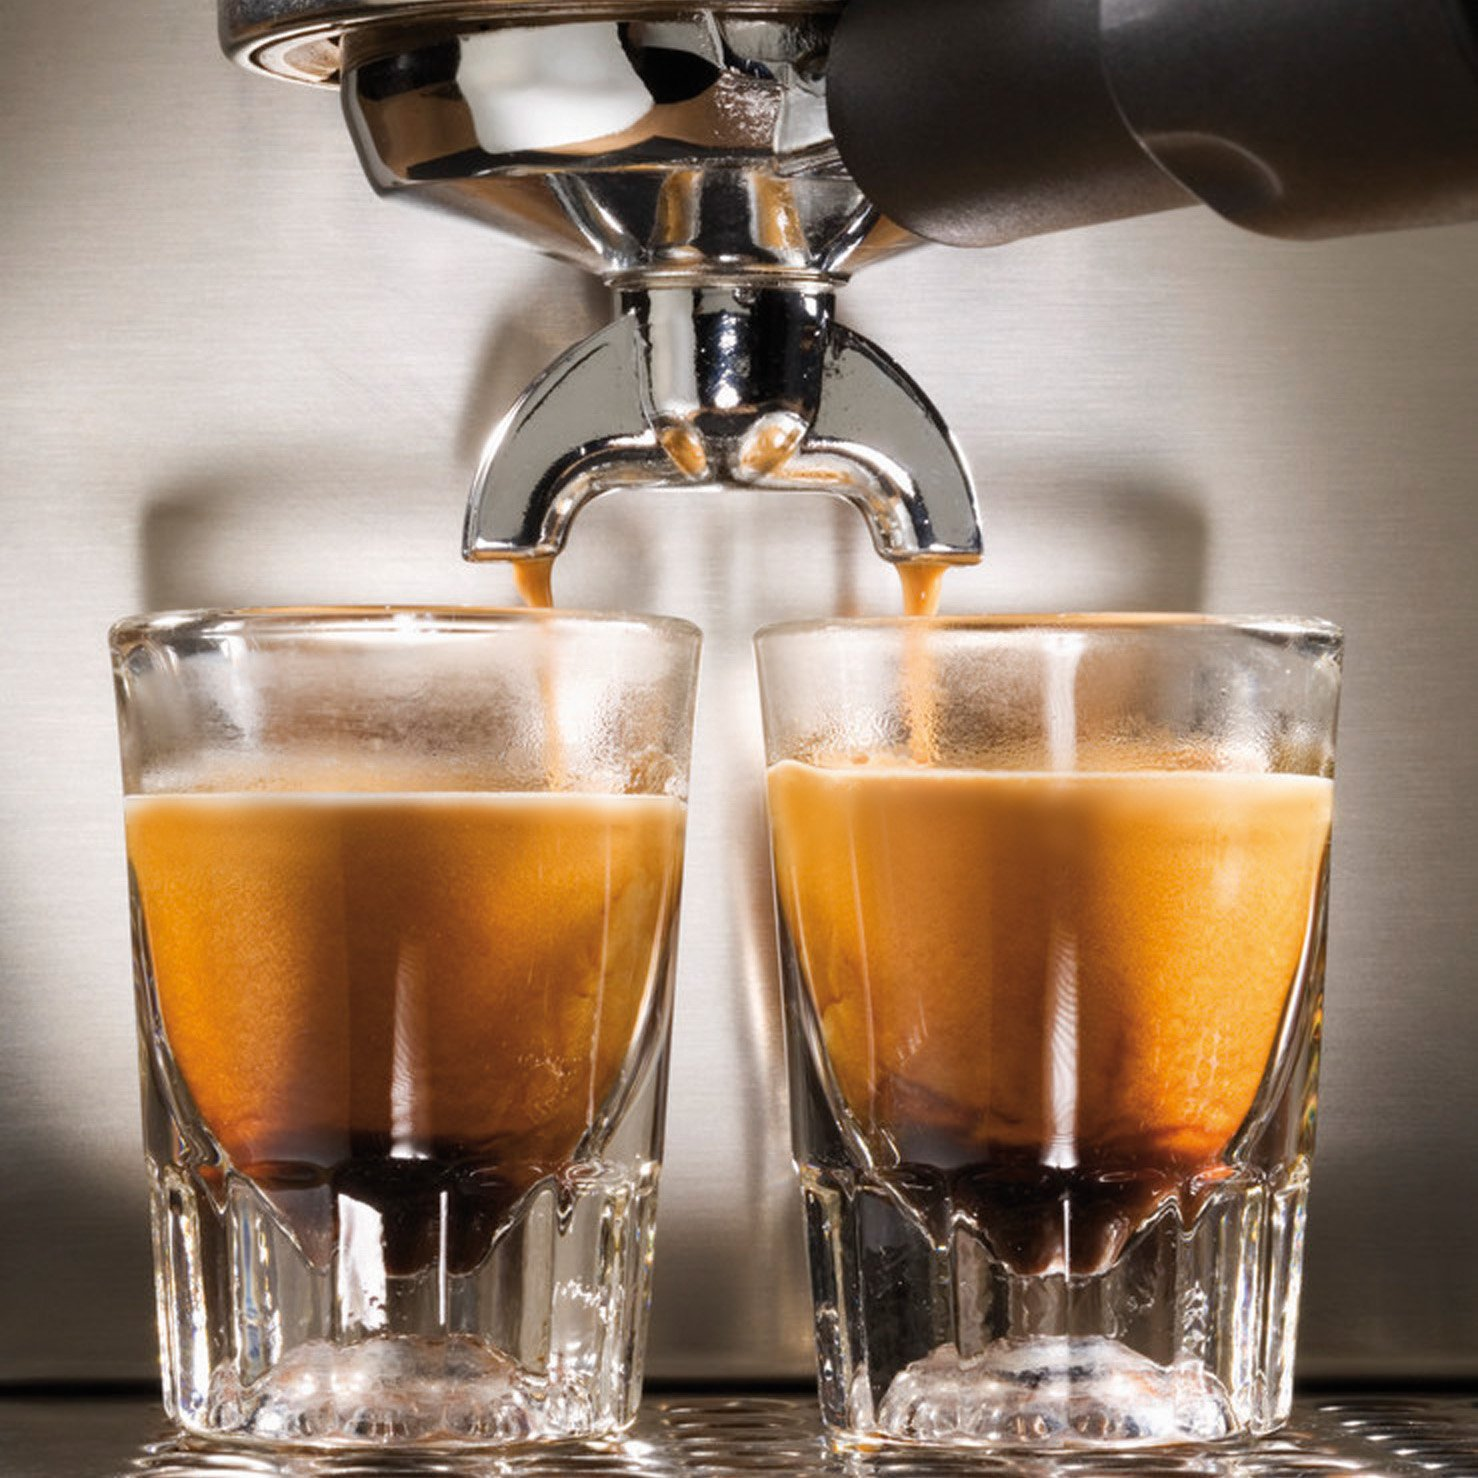 Gaggia Classic Semi-Automatic Espresso Maker. Pannarello Wand for Latte and Cappuccino Frothing. Brews for Both Single and Double Shots. by Gaggia (Image #3)